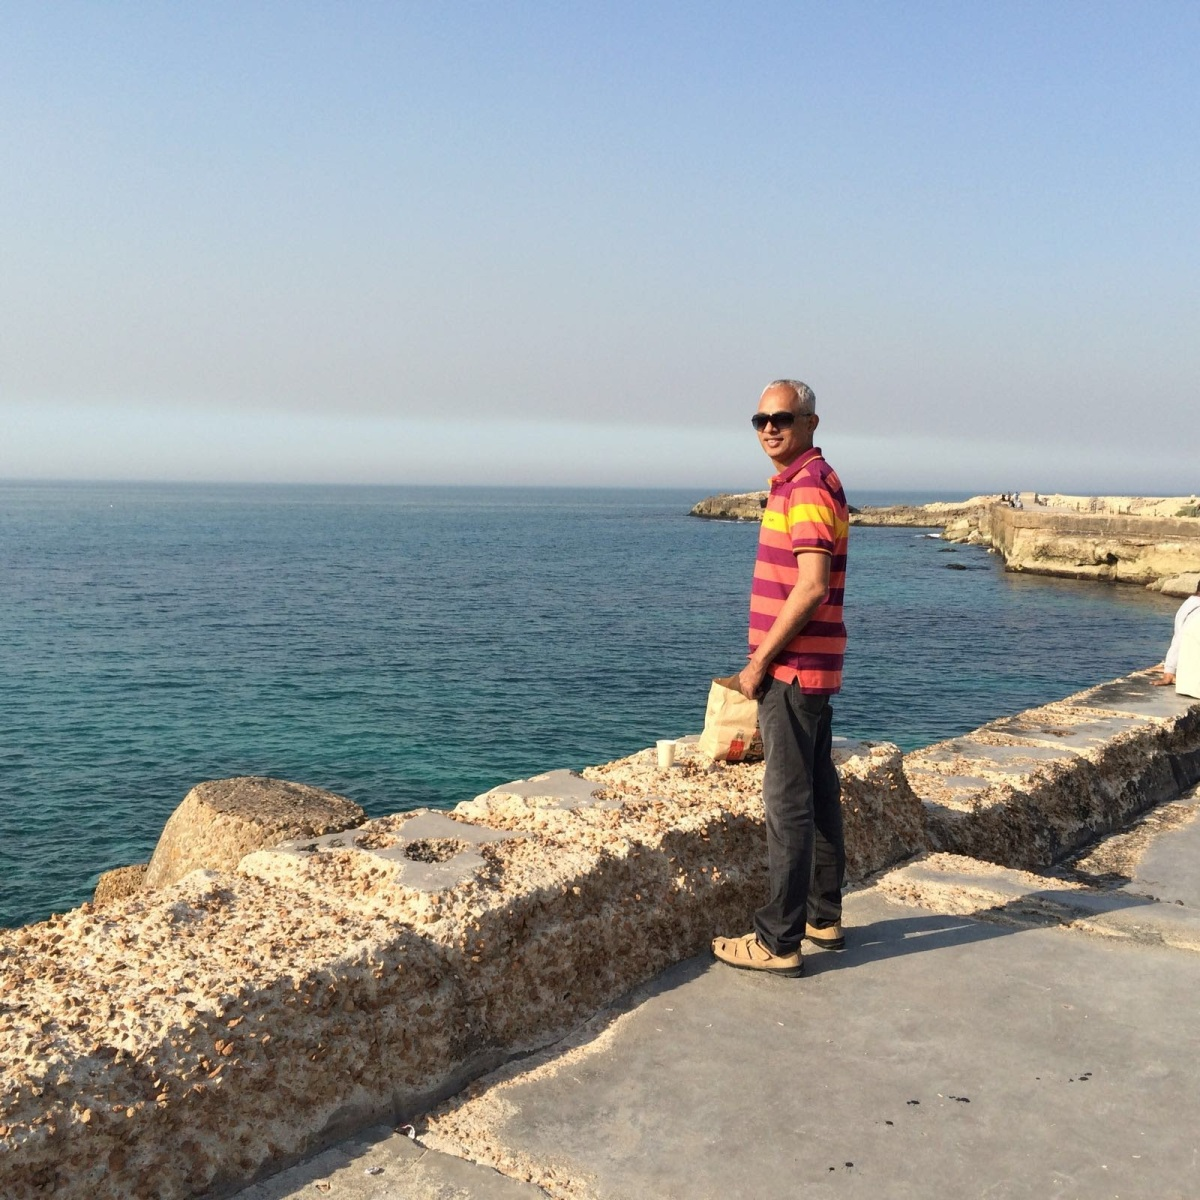 Mediterranean Sea in Alexandria